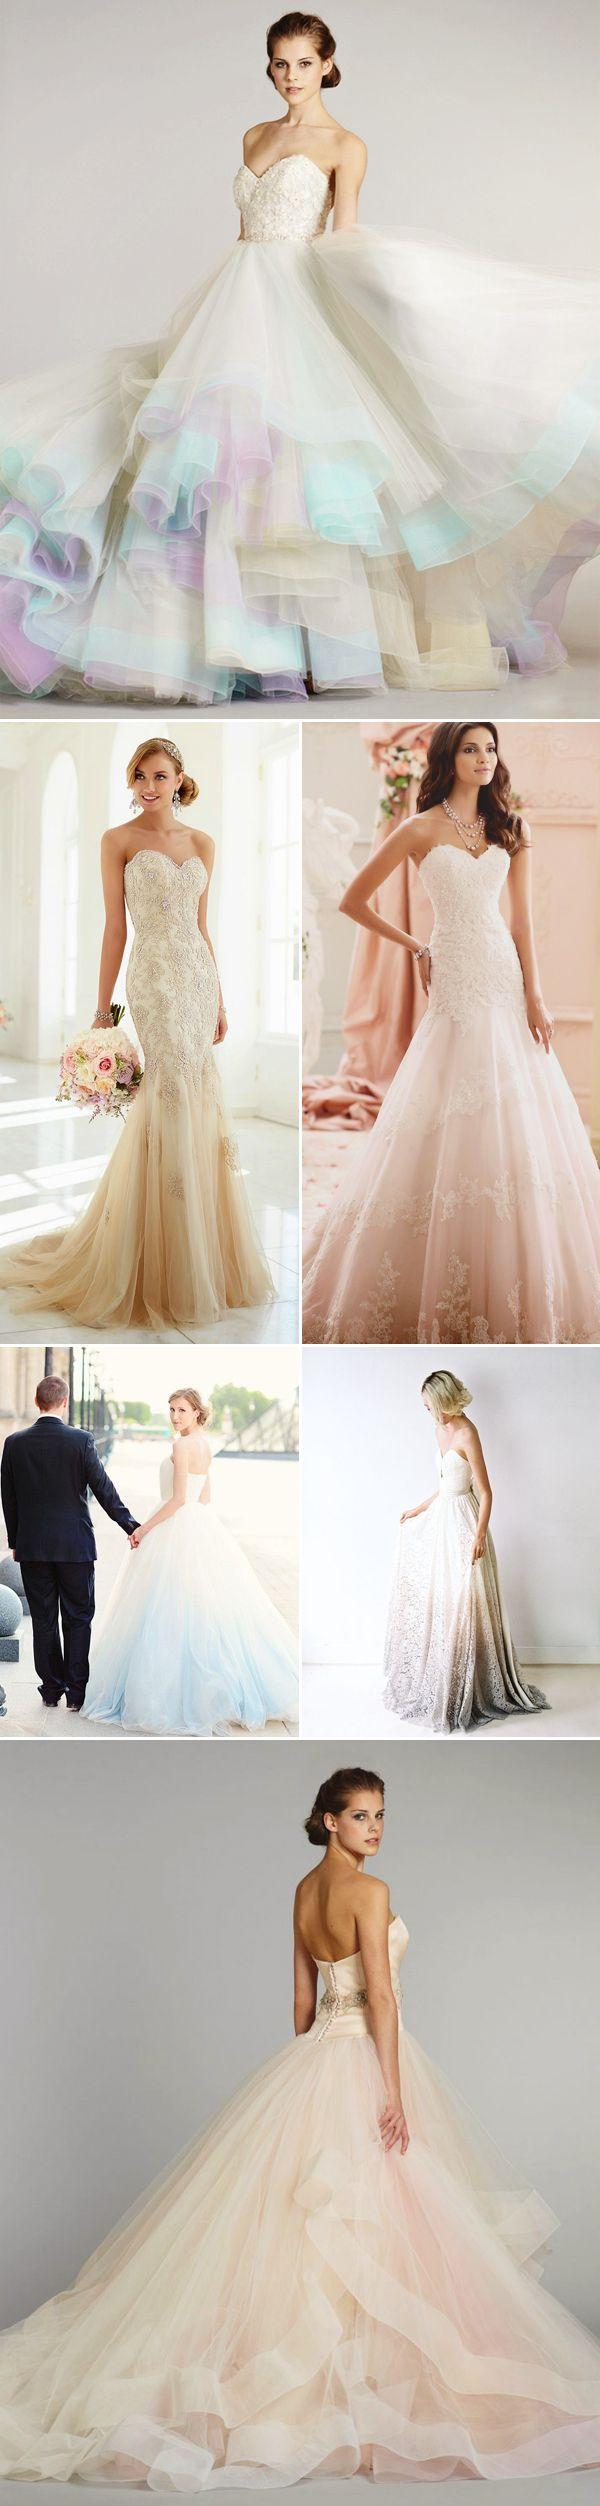 """Свадьба - Most Romantic Bridal Trend! 22 """"Barely Colorful"""" Wedding Dresses With A Touch Of Color! - Praise Wedding"""